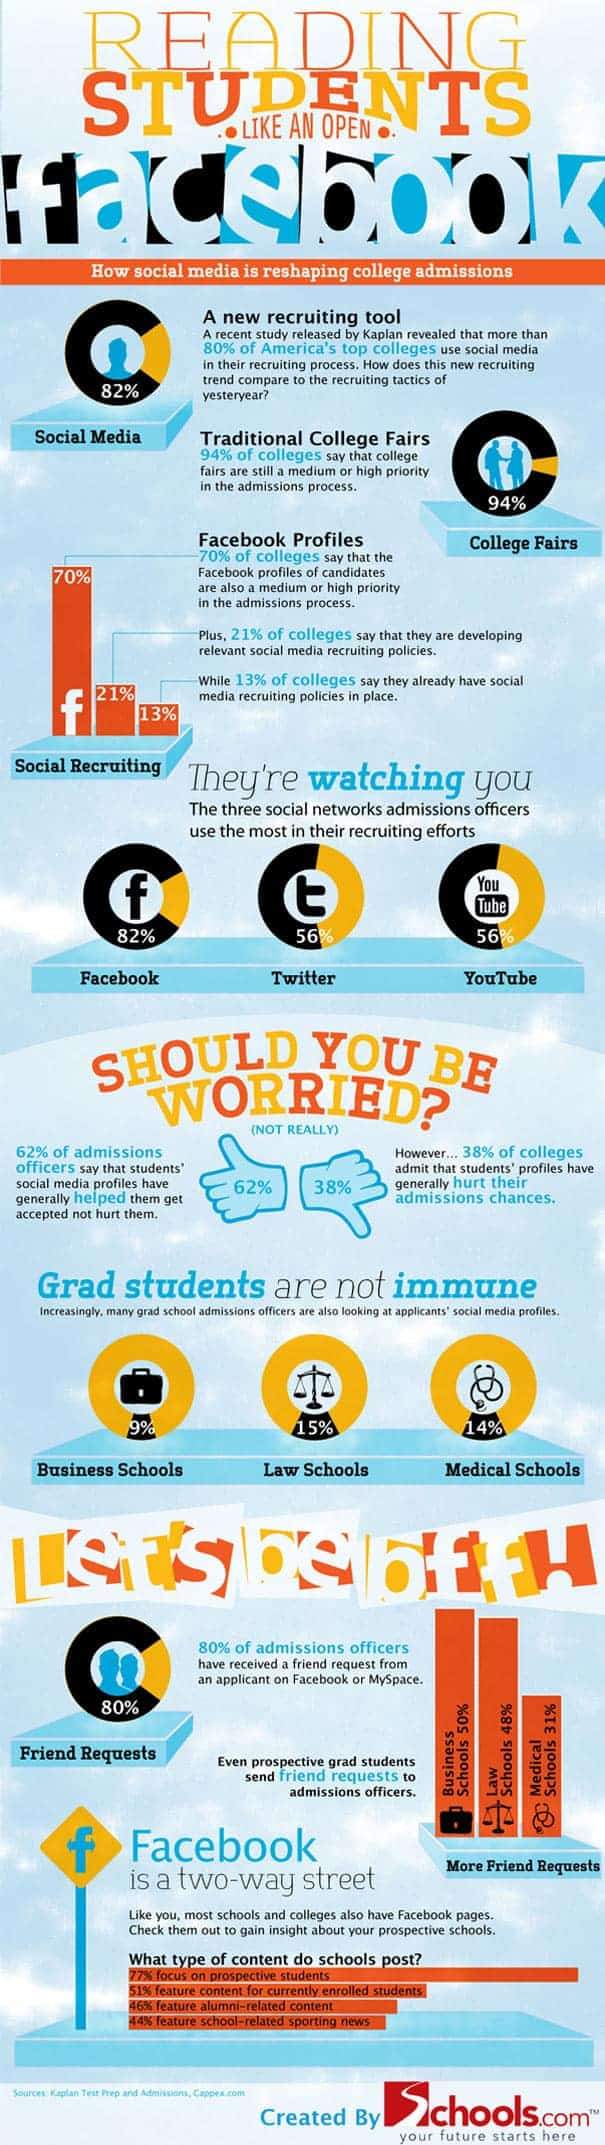 Reading-students-like-an-open-facebook-or-how-social-media-is-reshaping-college-admissions